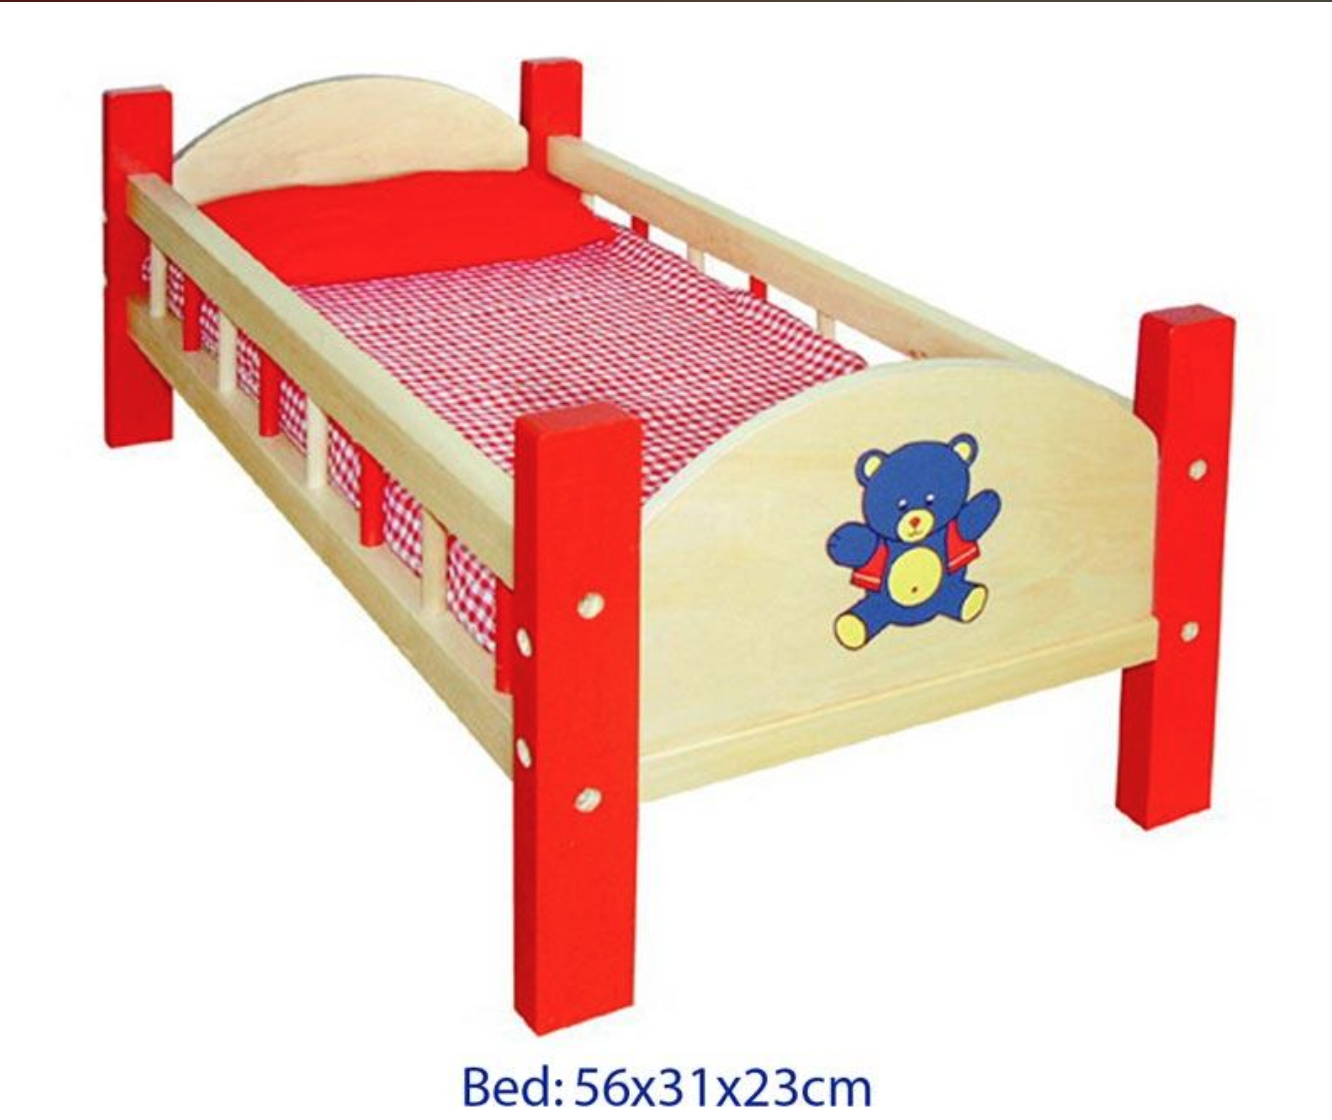 Wooden Doll Red Bed by VIGA Toys